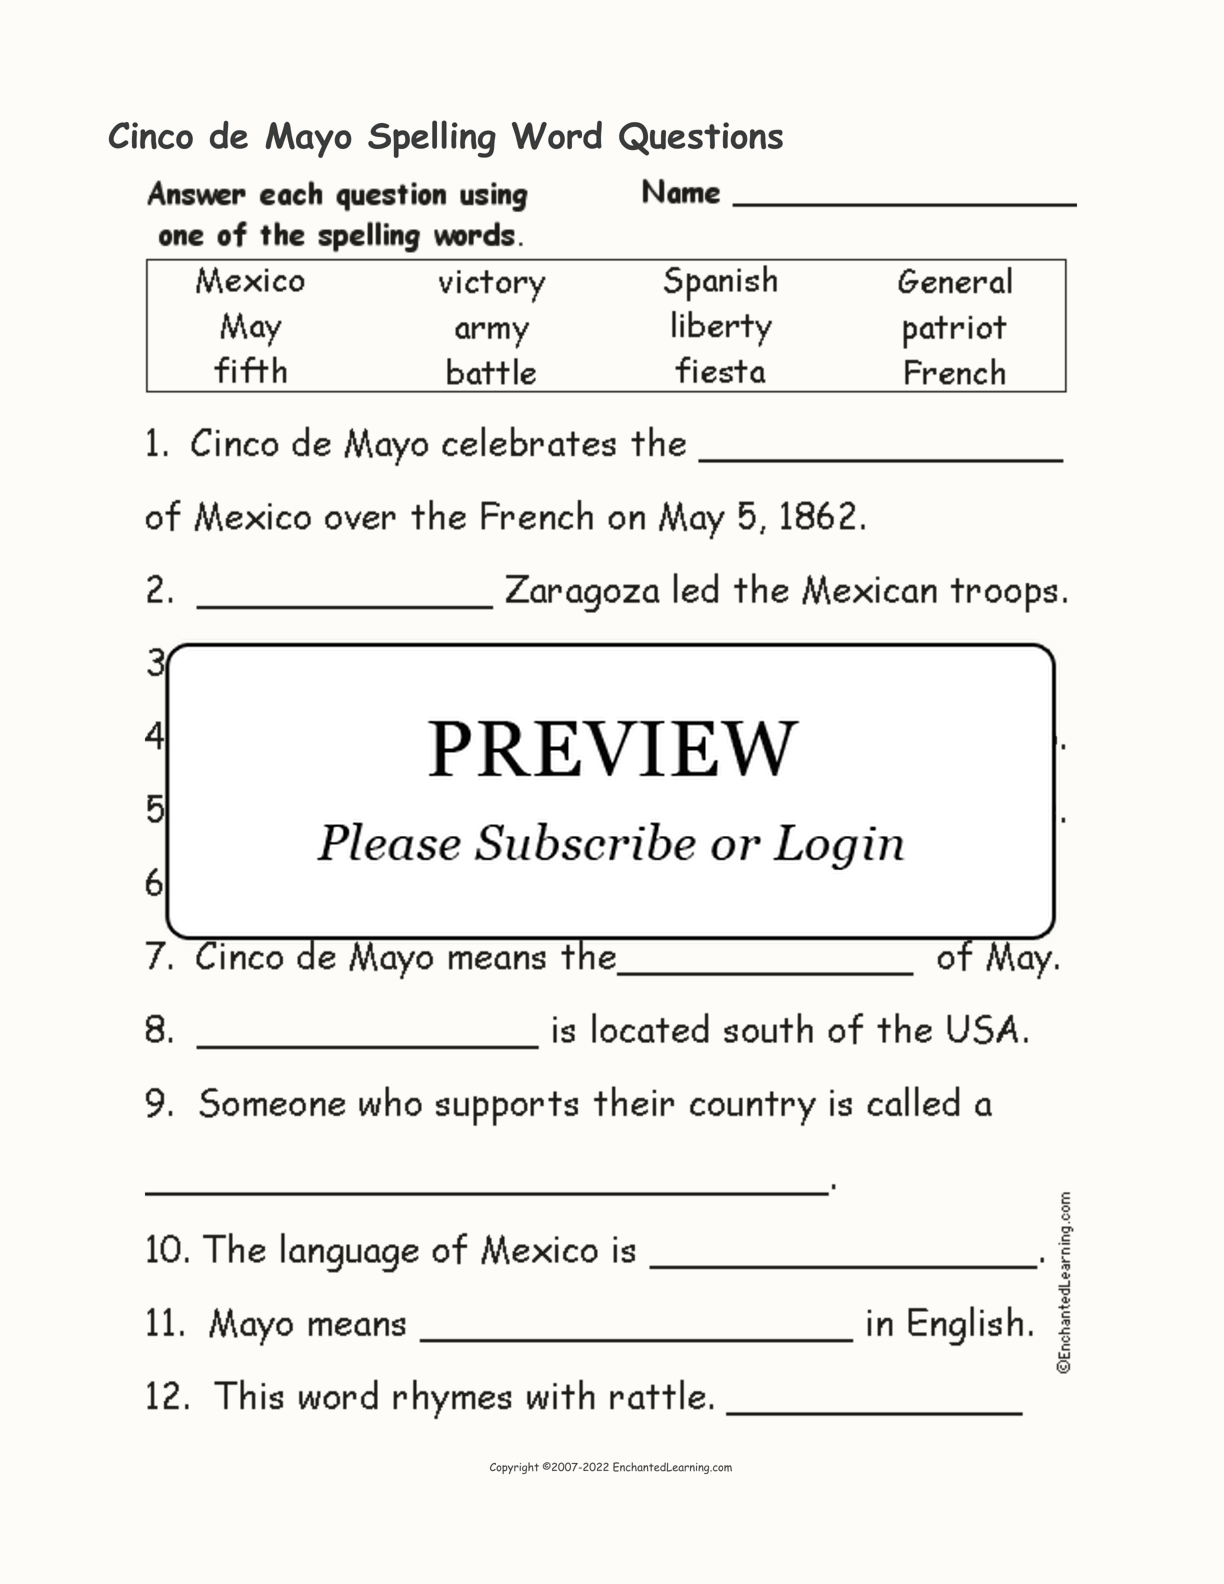 Cinco de Mayo Spelling Word Questions interactive worksheet page 1